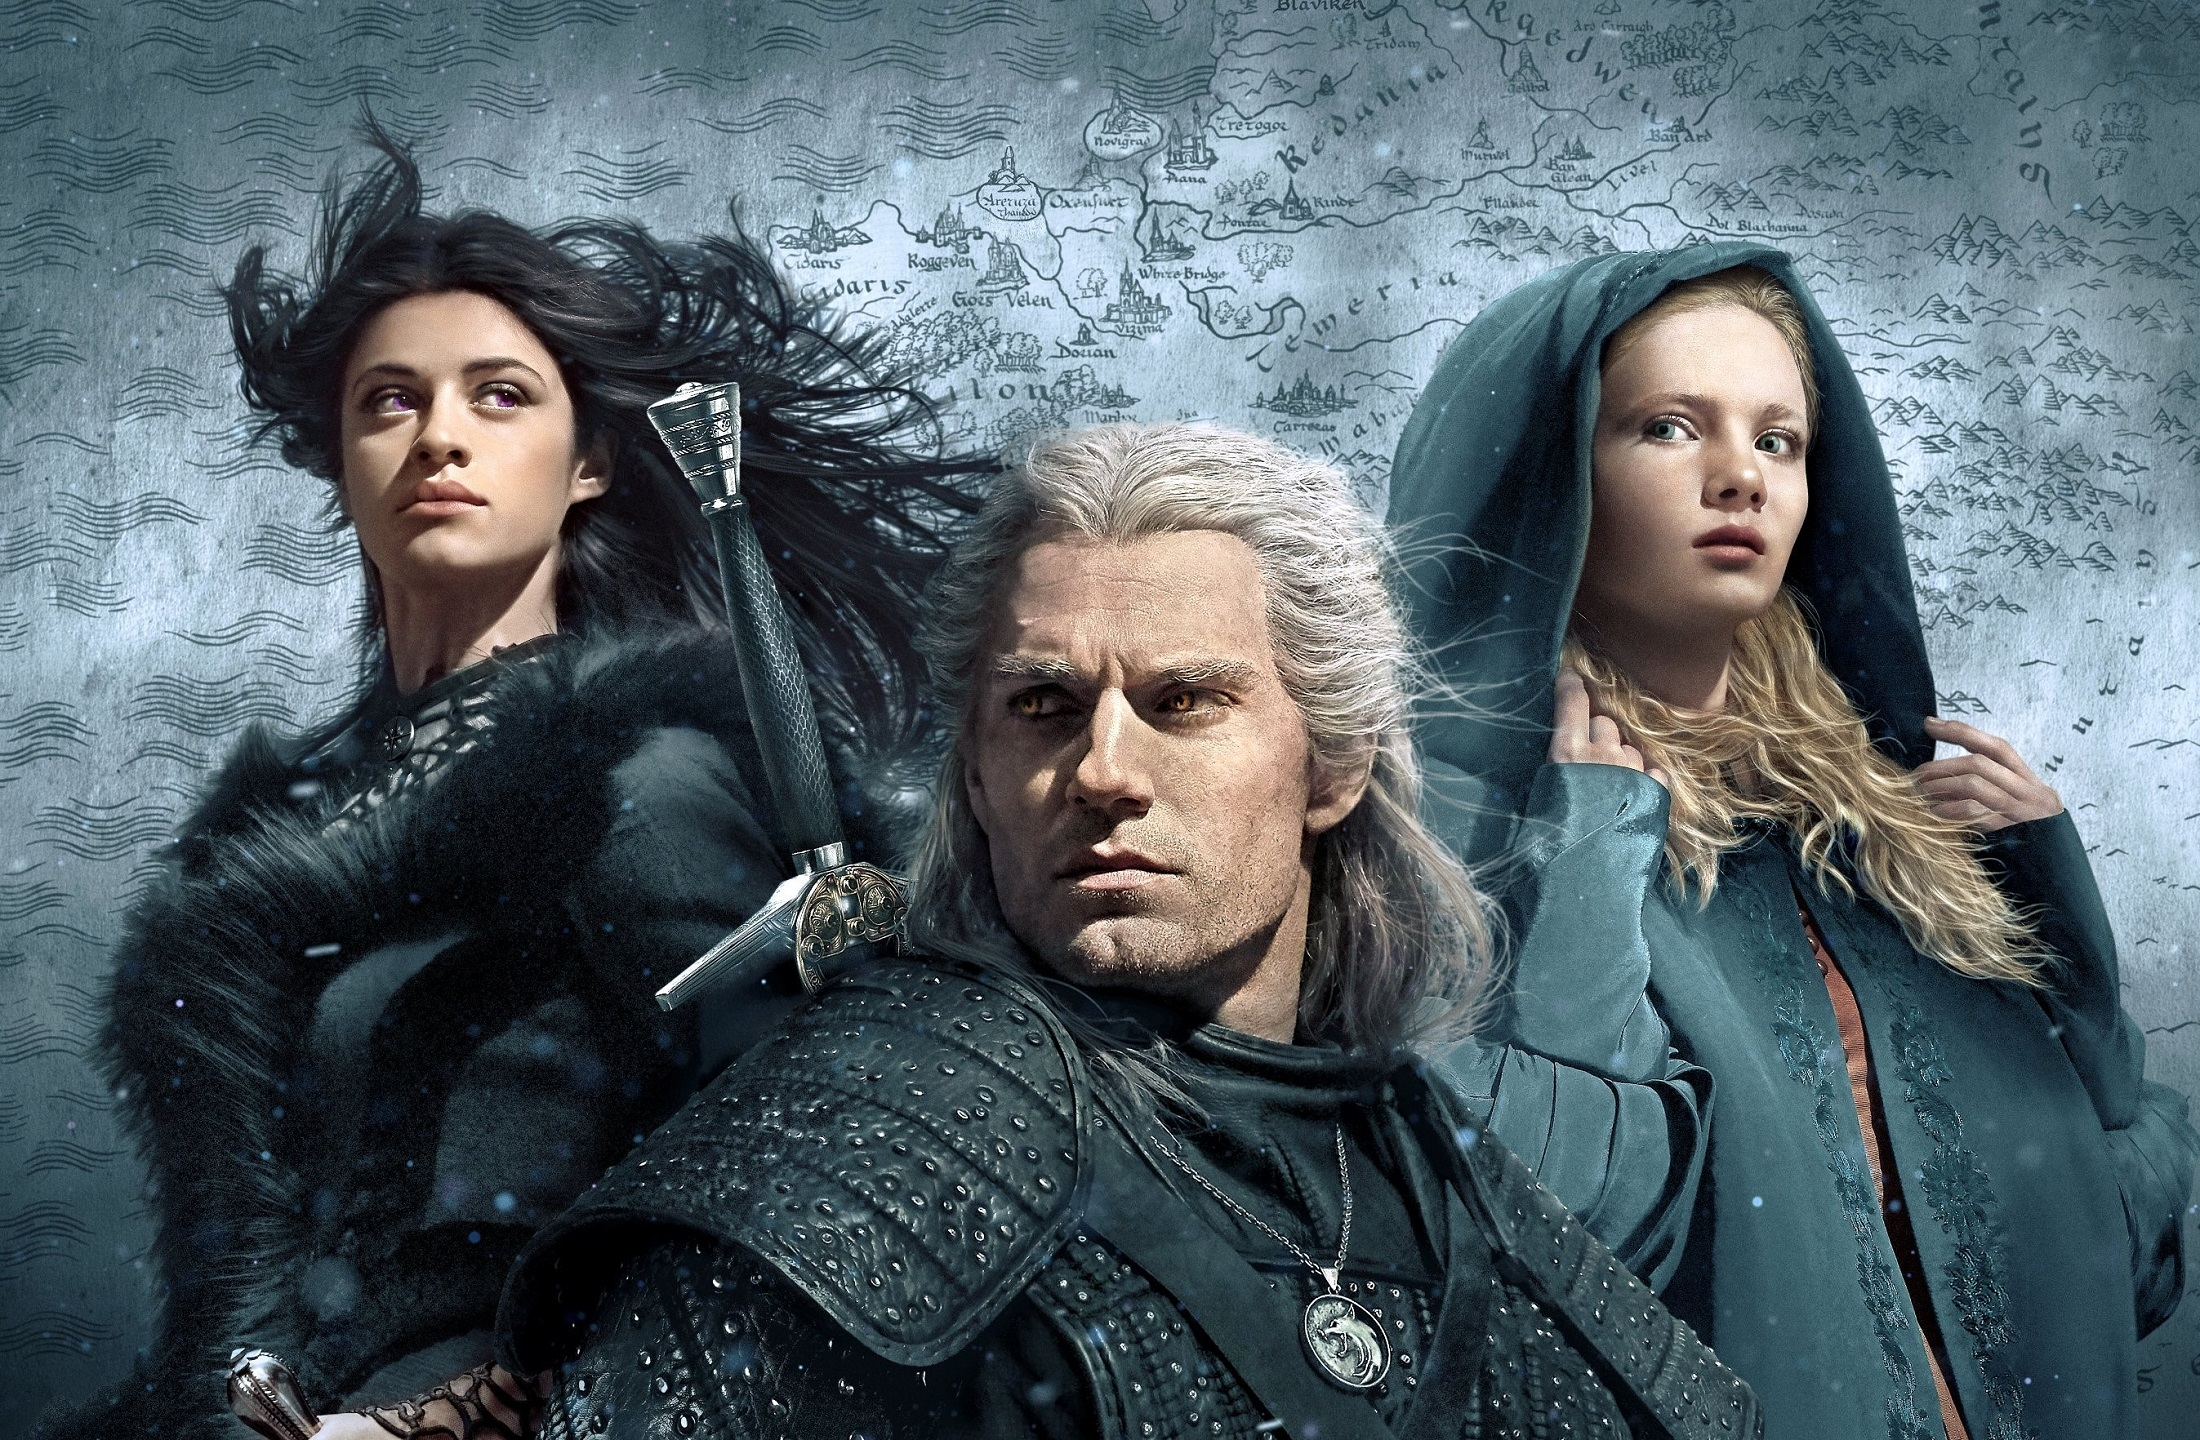 Poster for Netflix's The Witcher